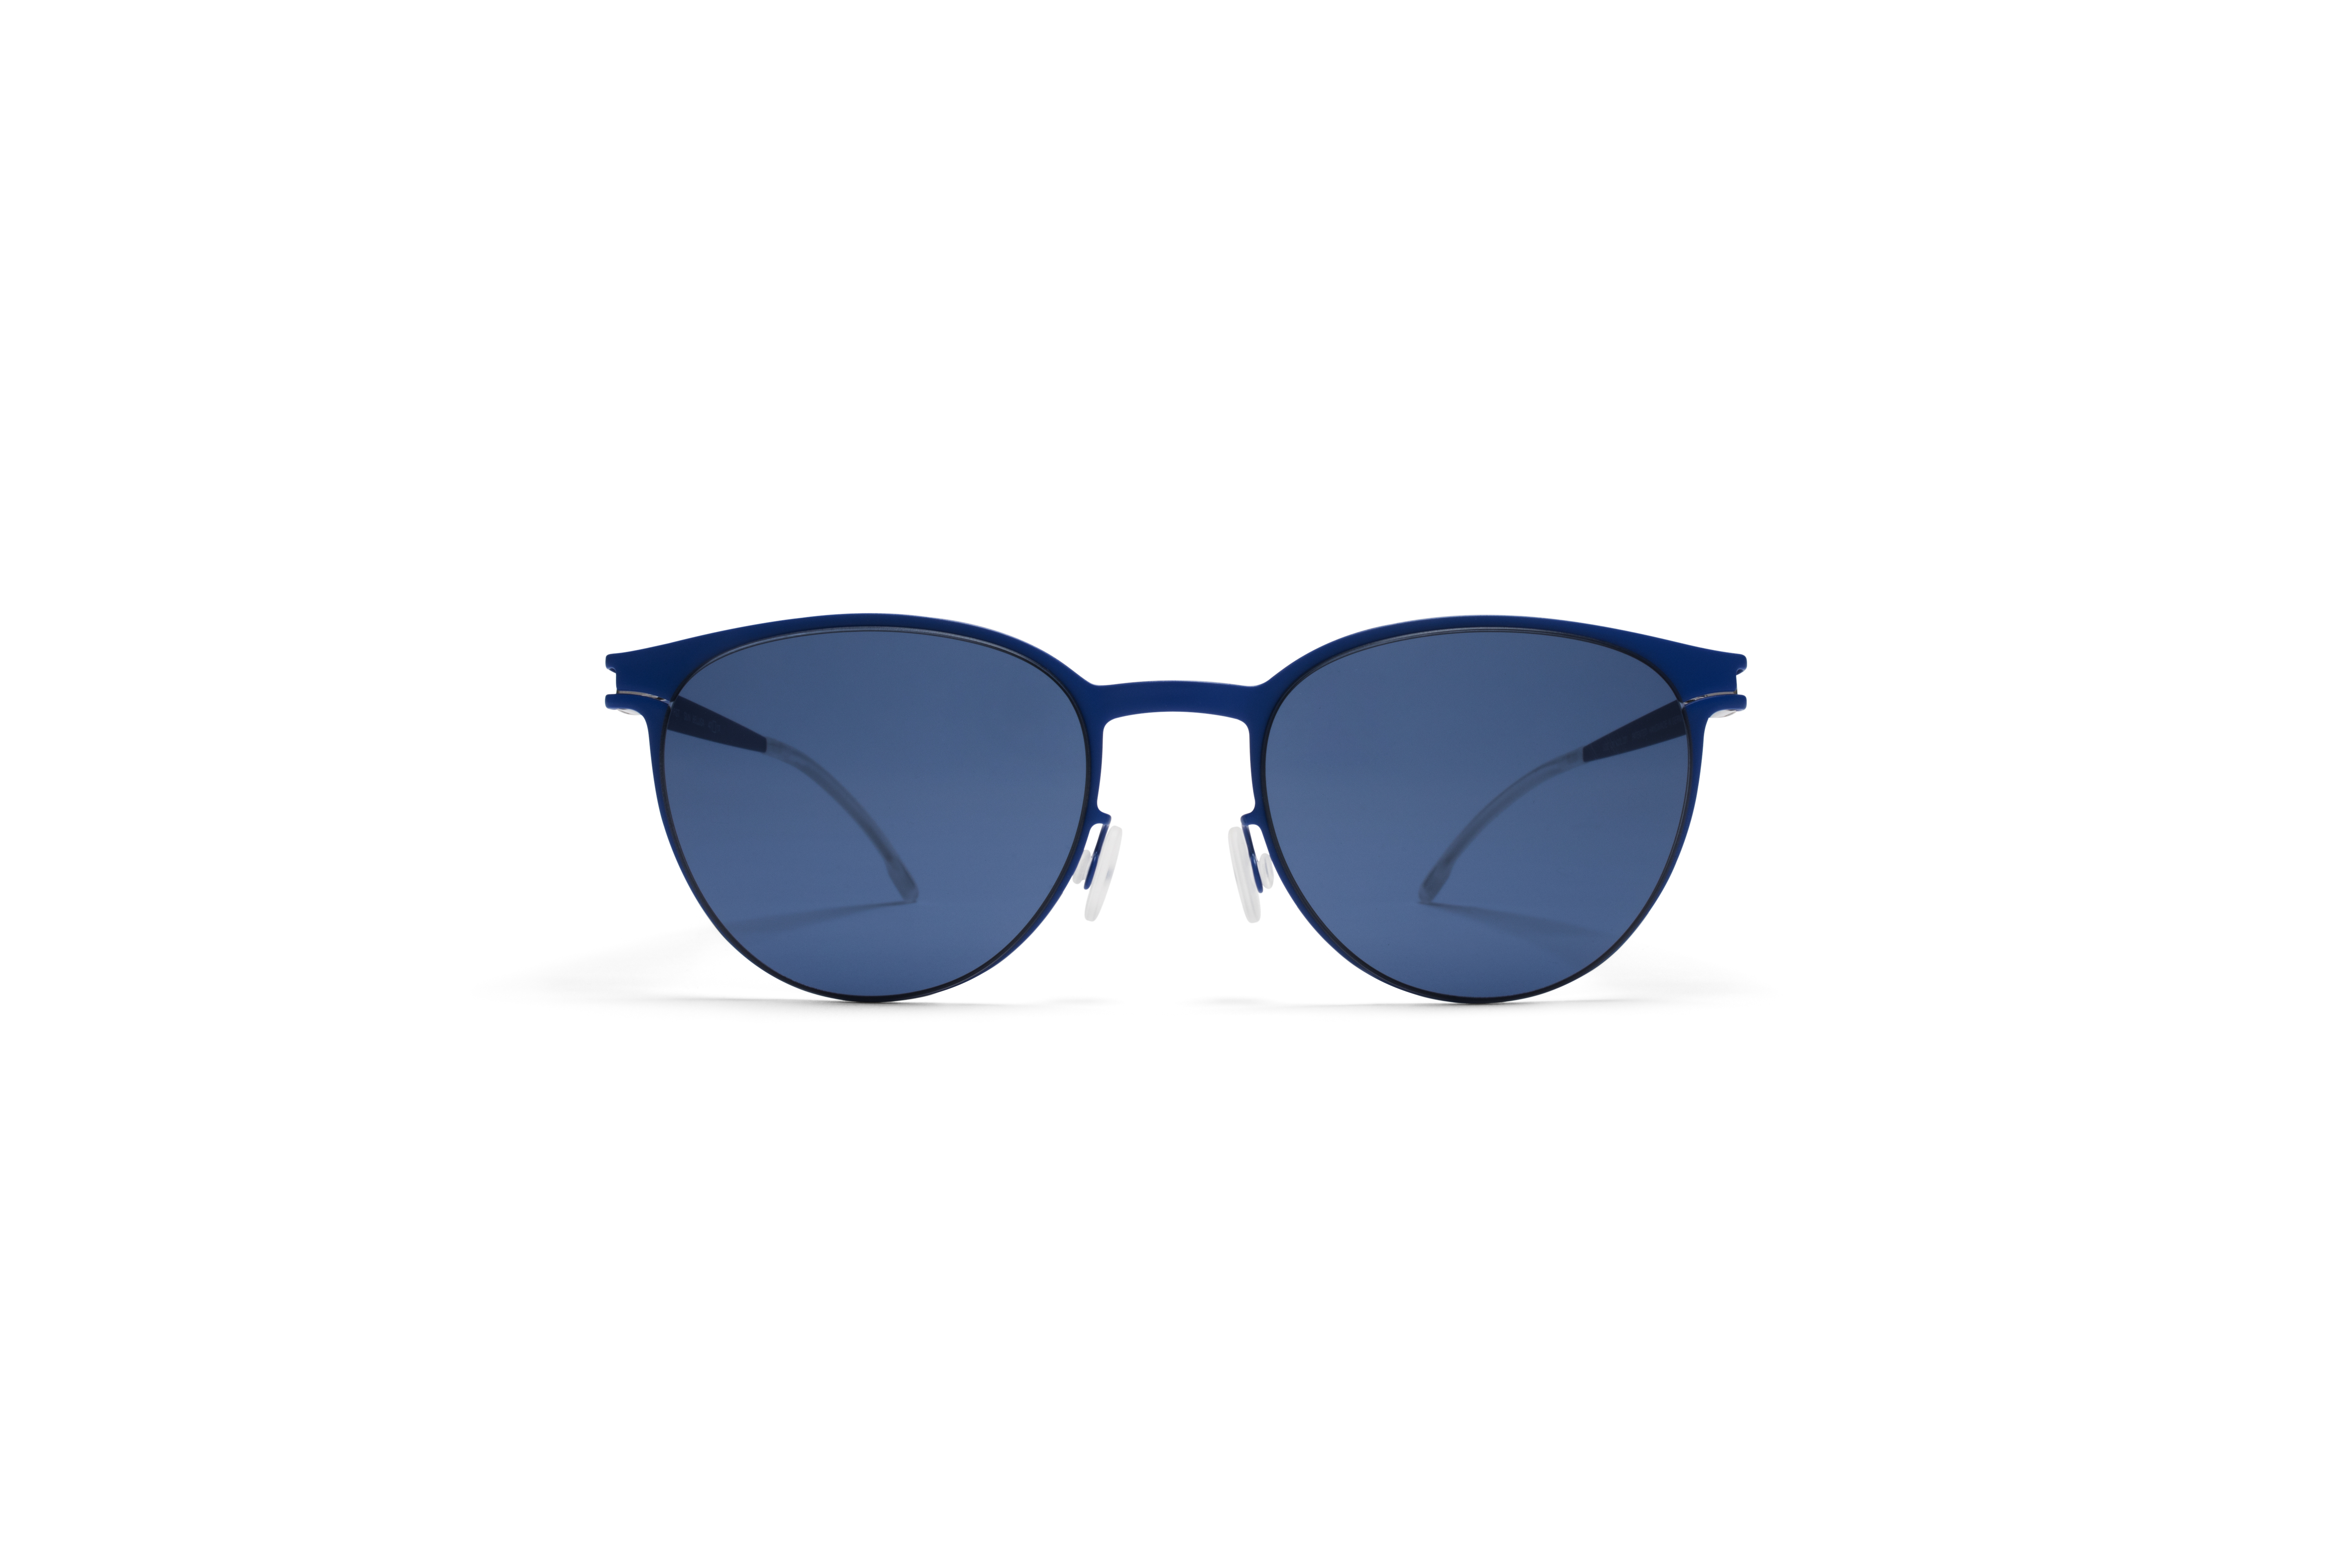 MYKITA First Sun Beluga R9 Internationalblue Saphi56bca91b13660